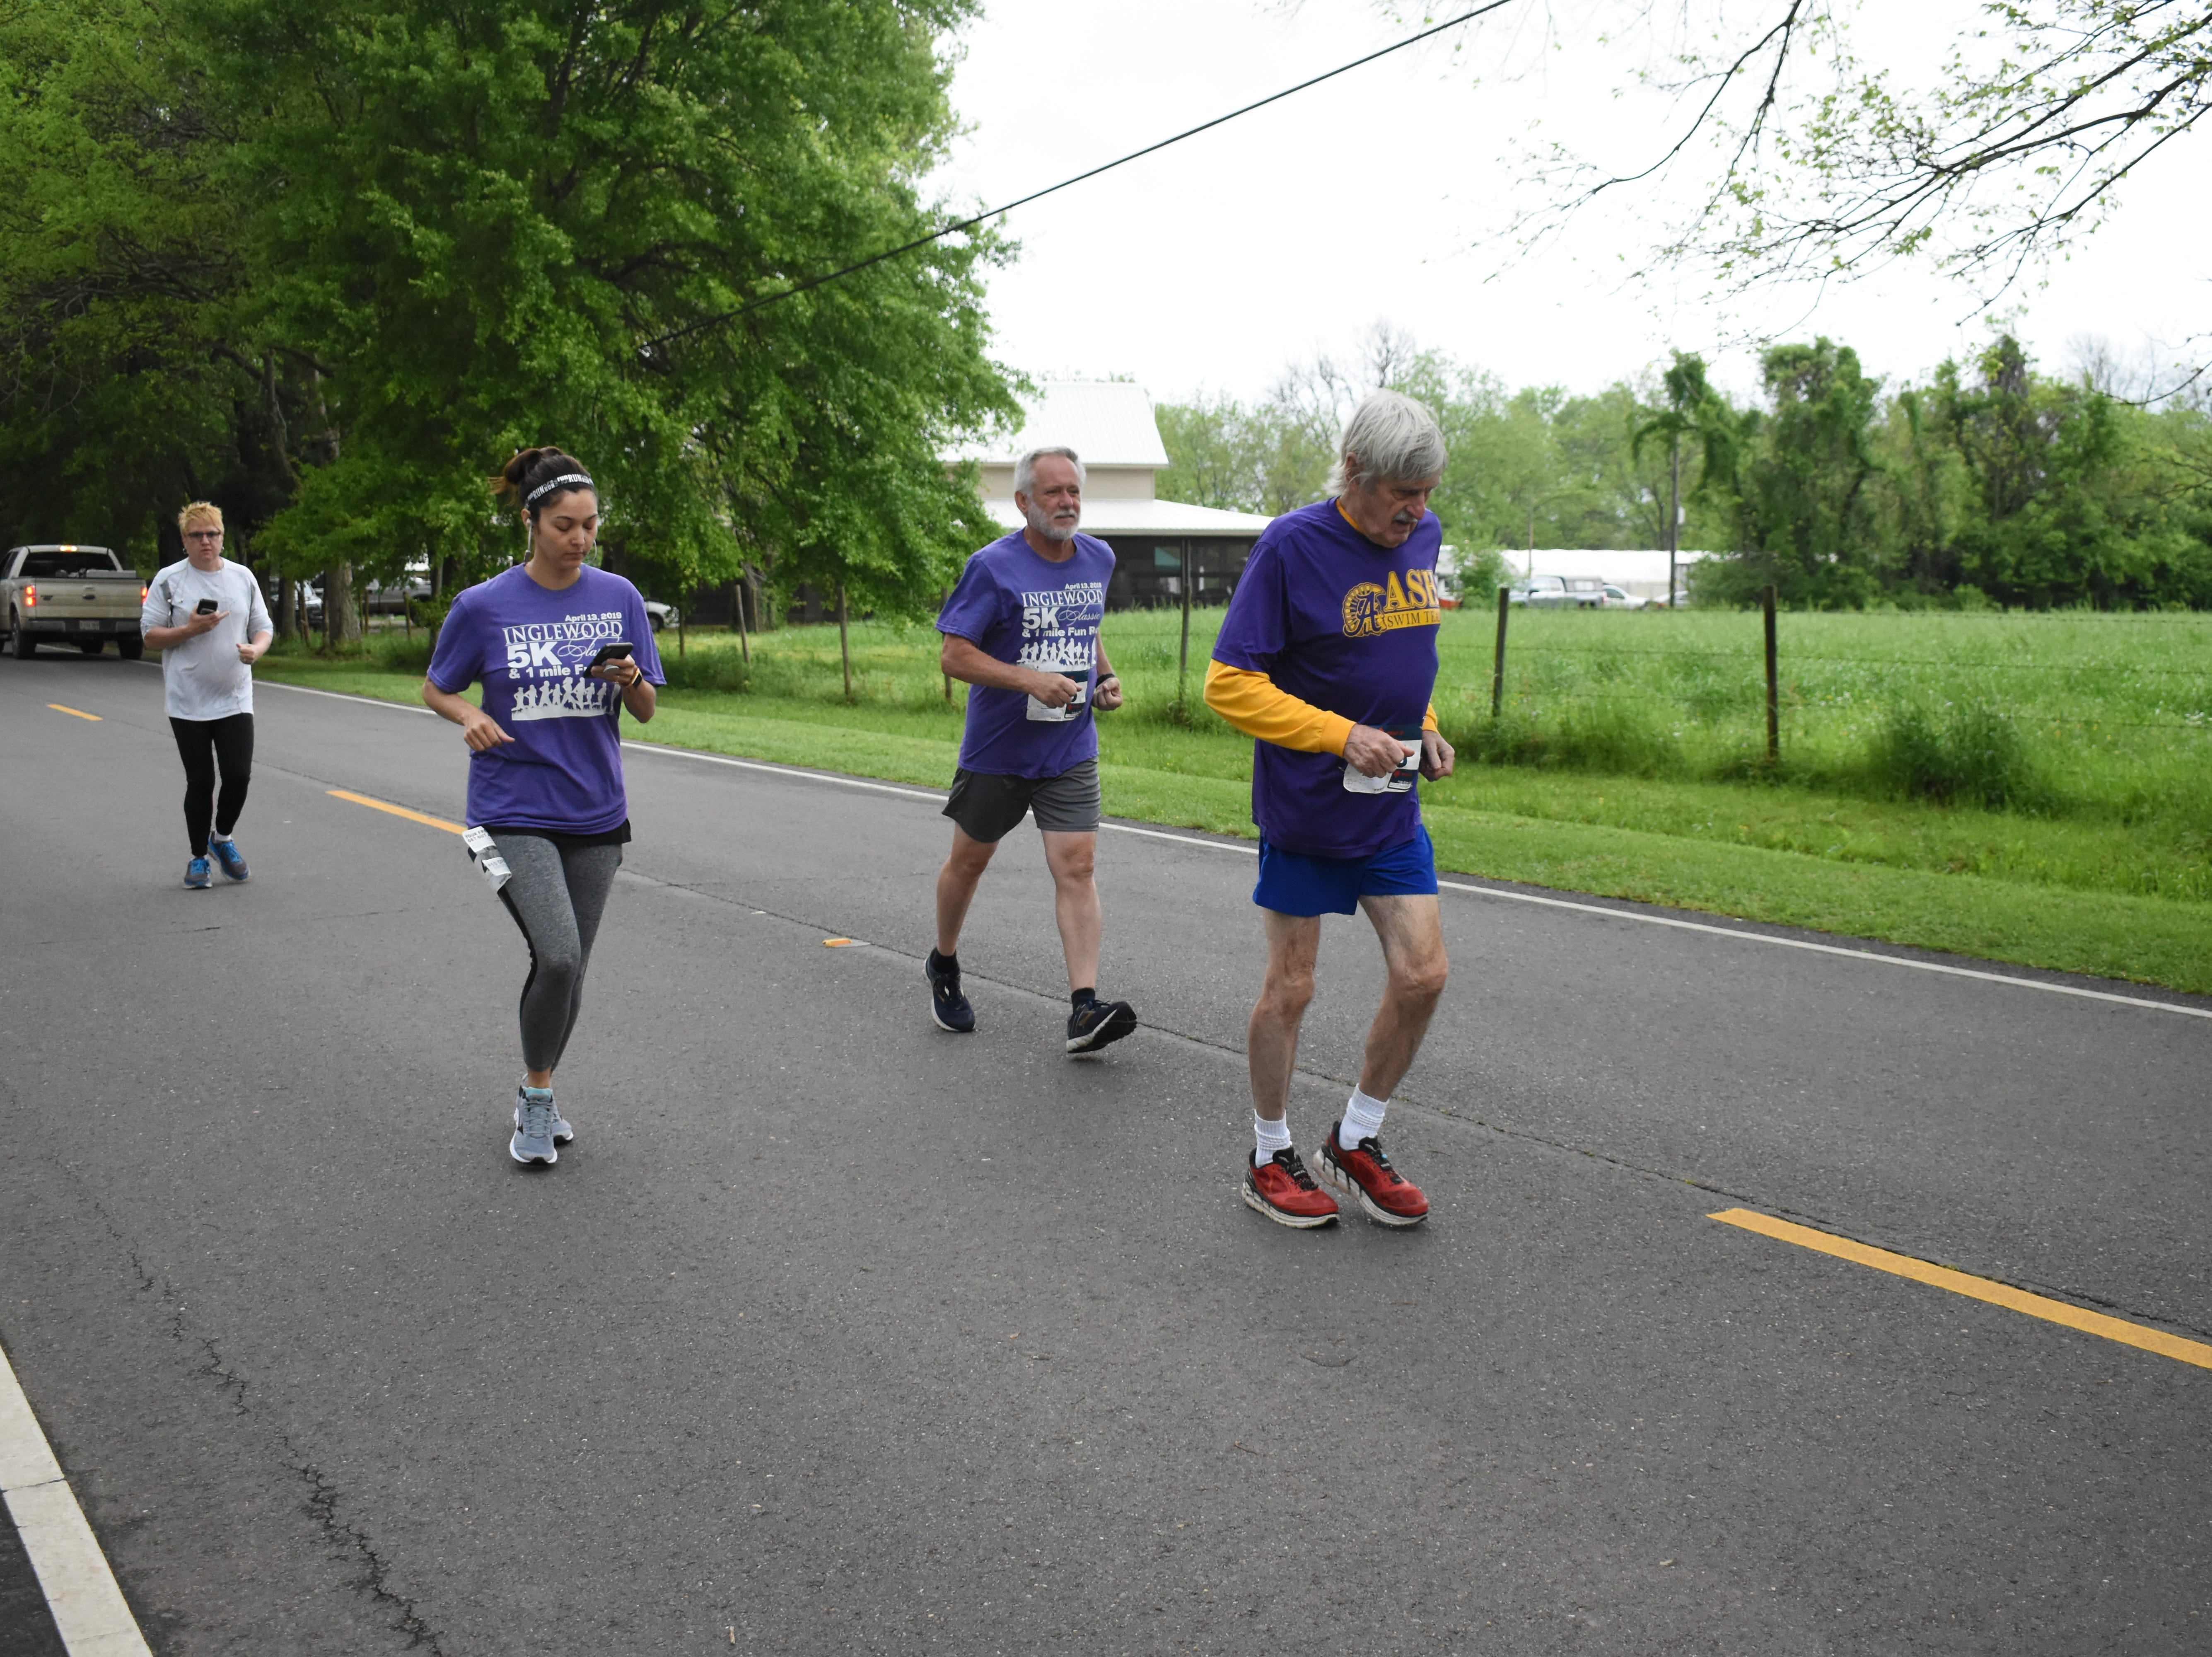 The Inglewood Class 5k & 1-mile Fun Run was held Saturday, April 13, 2019 at Inglewood Plantation with about 90 runners and walkers participating. Proceeds from the run benefit the Food Bank of Central Louisiana's Good Food Project . The Good Food Project has community and school gardens through Central Louisinana that feed and educate people about eating healthy foods and having a healthy lifestyle.